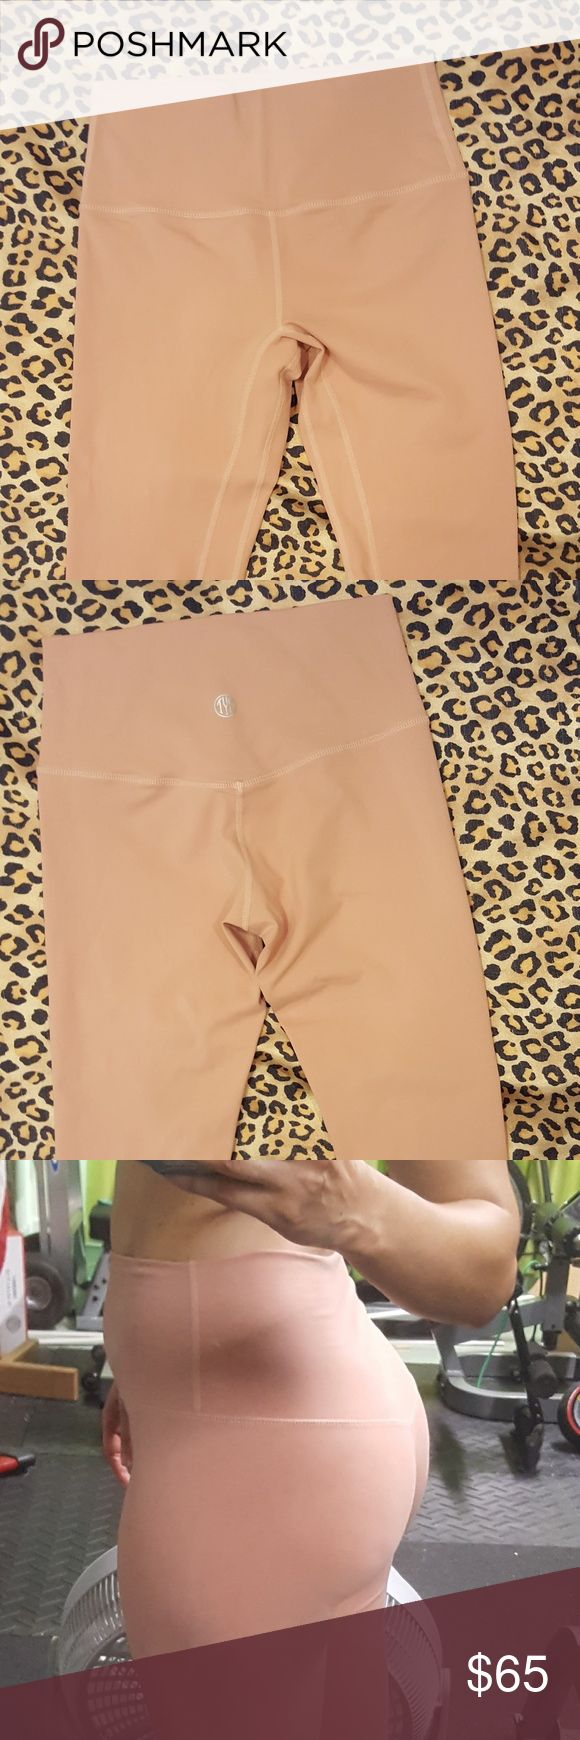 Til you collapse Nude leggings Lululemon quality with half the price tag. Super soft, comfortable, second skin feeling. Seamless. Gorgeous color. High waisted. You'll love these. Pants Leggings